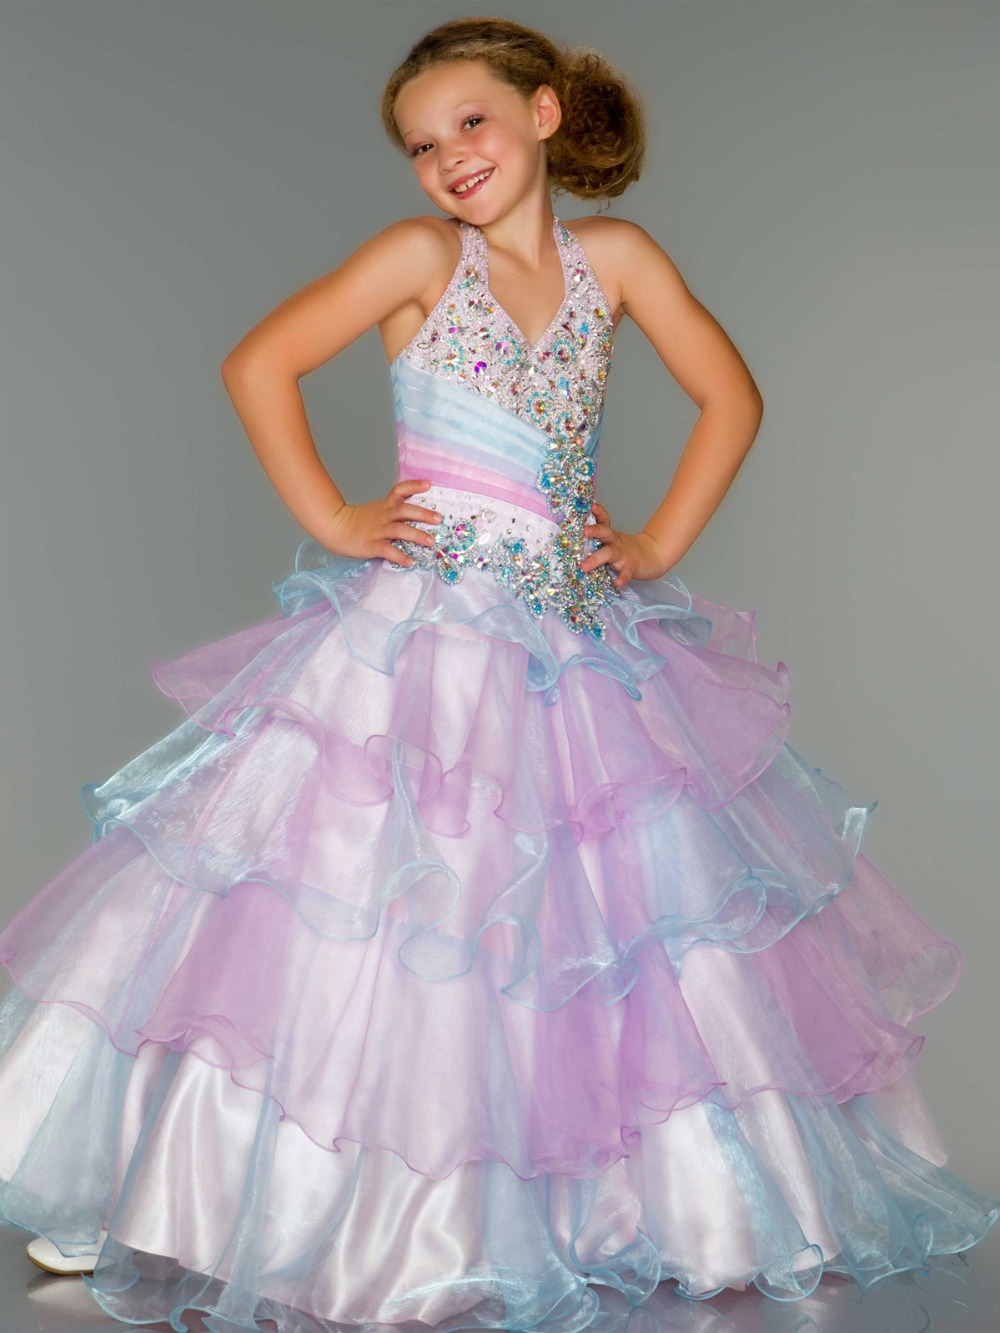 The dresses for girls at Kohl's provide a special look for that special occasion. Kohl's offers dresses for girls of all ages, including baby girl dresses, toddler girl dresses and up. Kohl's also offers a wide range of girls skirts for added formalwear versatility.